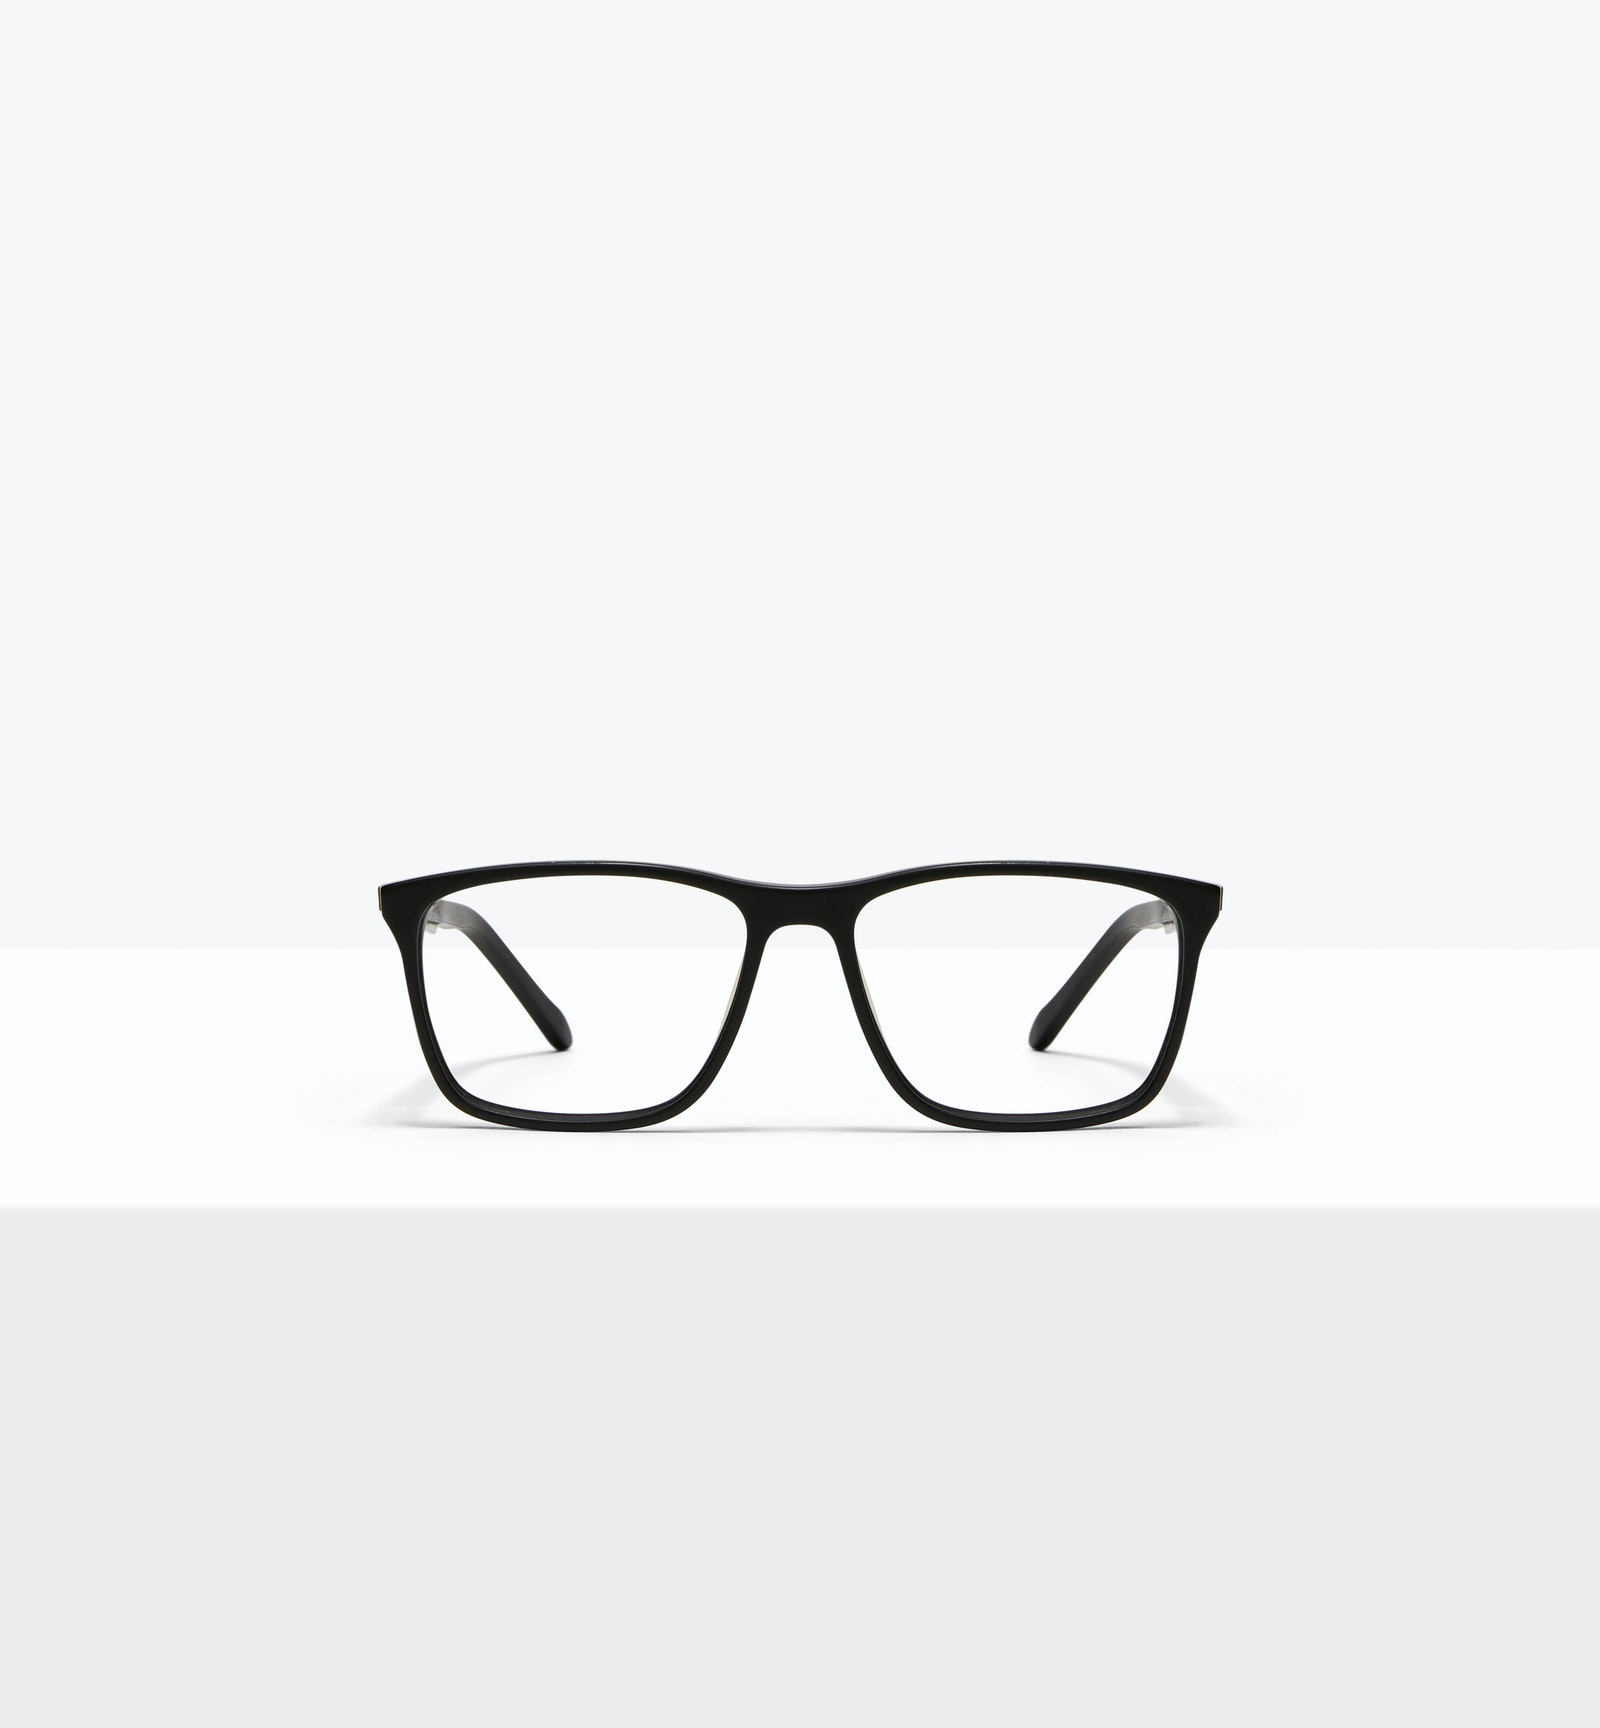 Affordable Fashion Glasses Rectangle Eyeglasses Men Skill Matt Black